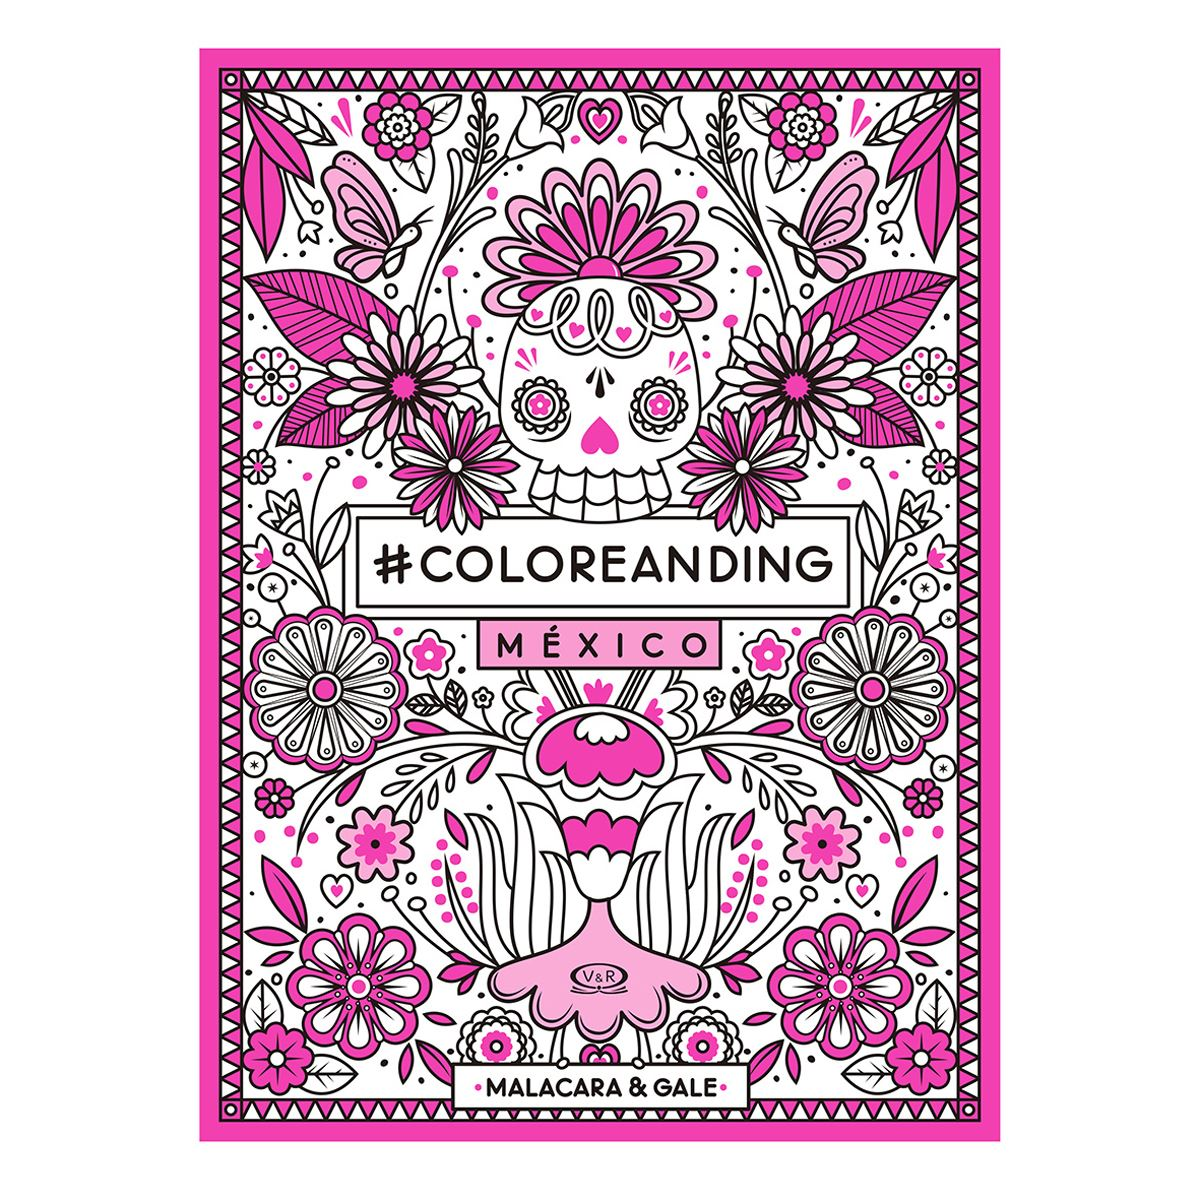 México #coloreanding Libro - Sanborns